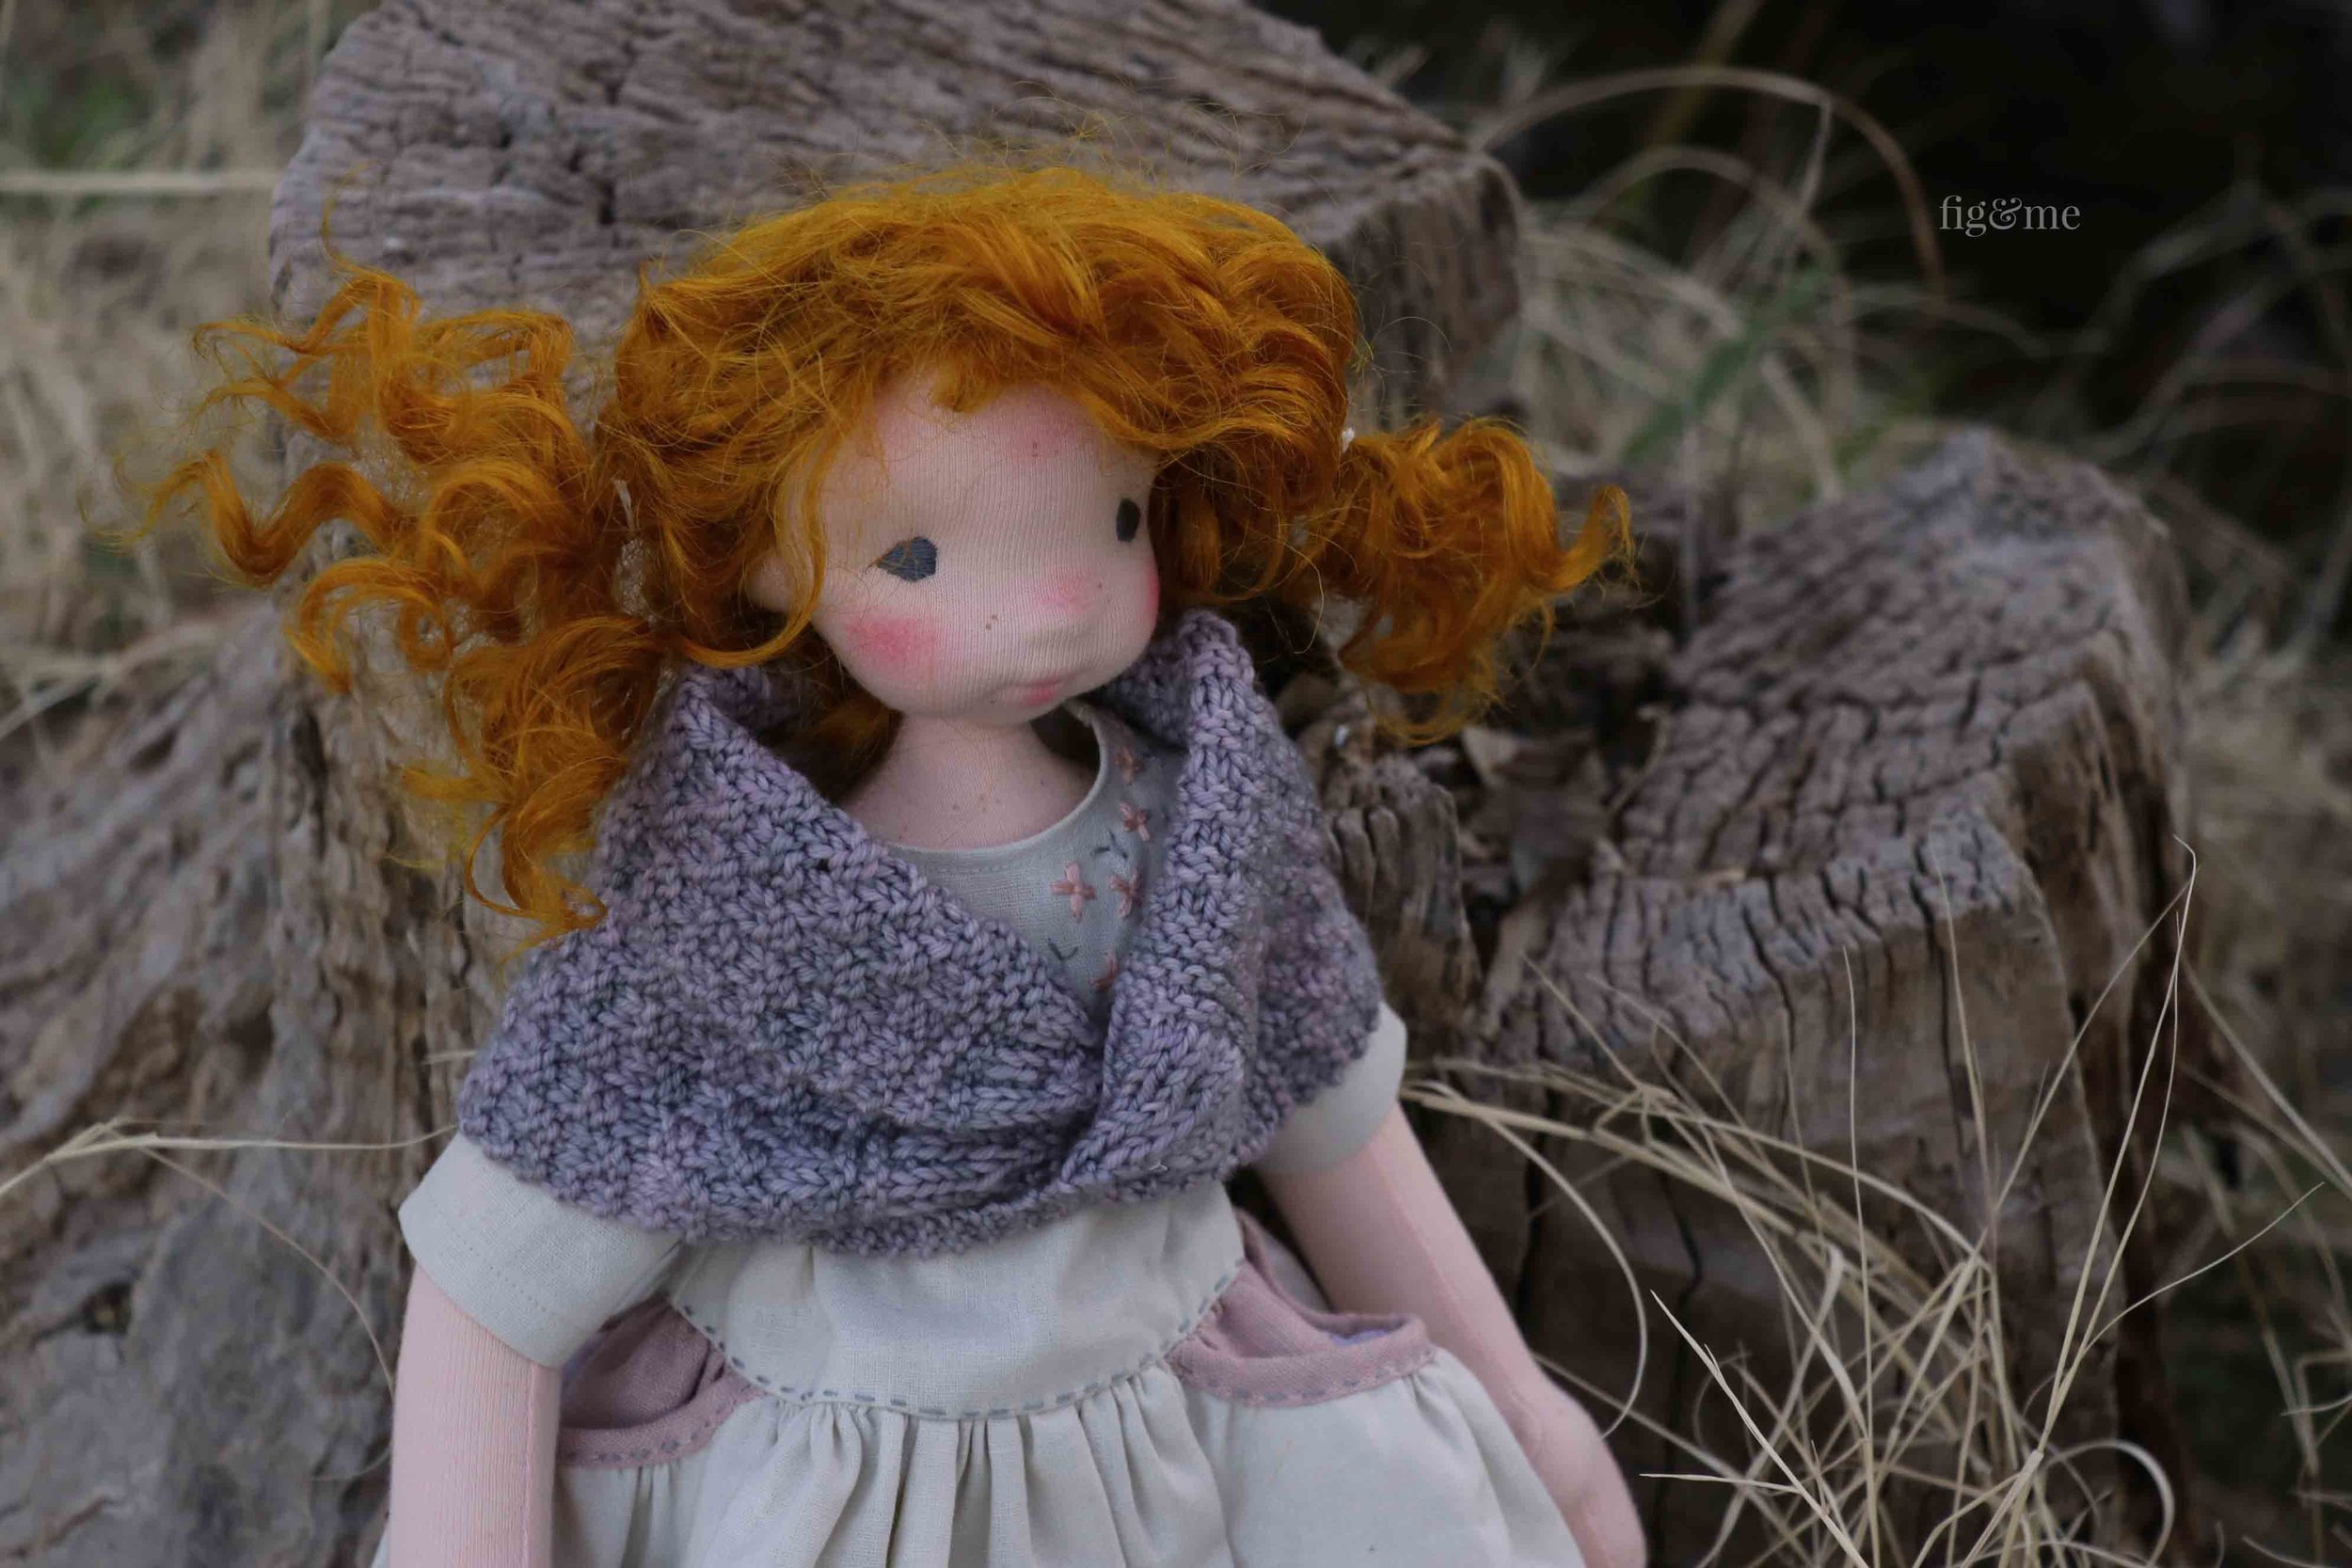 Maggie, a natural fiber art doll by Fig and Me.